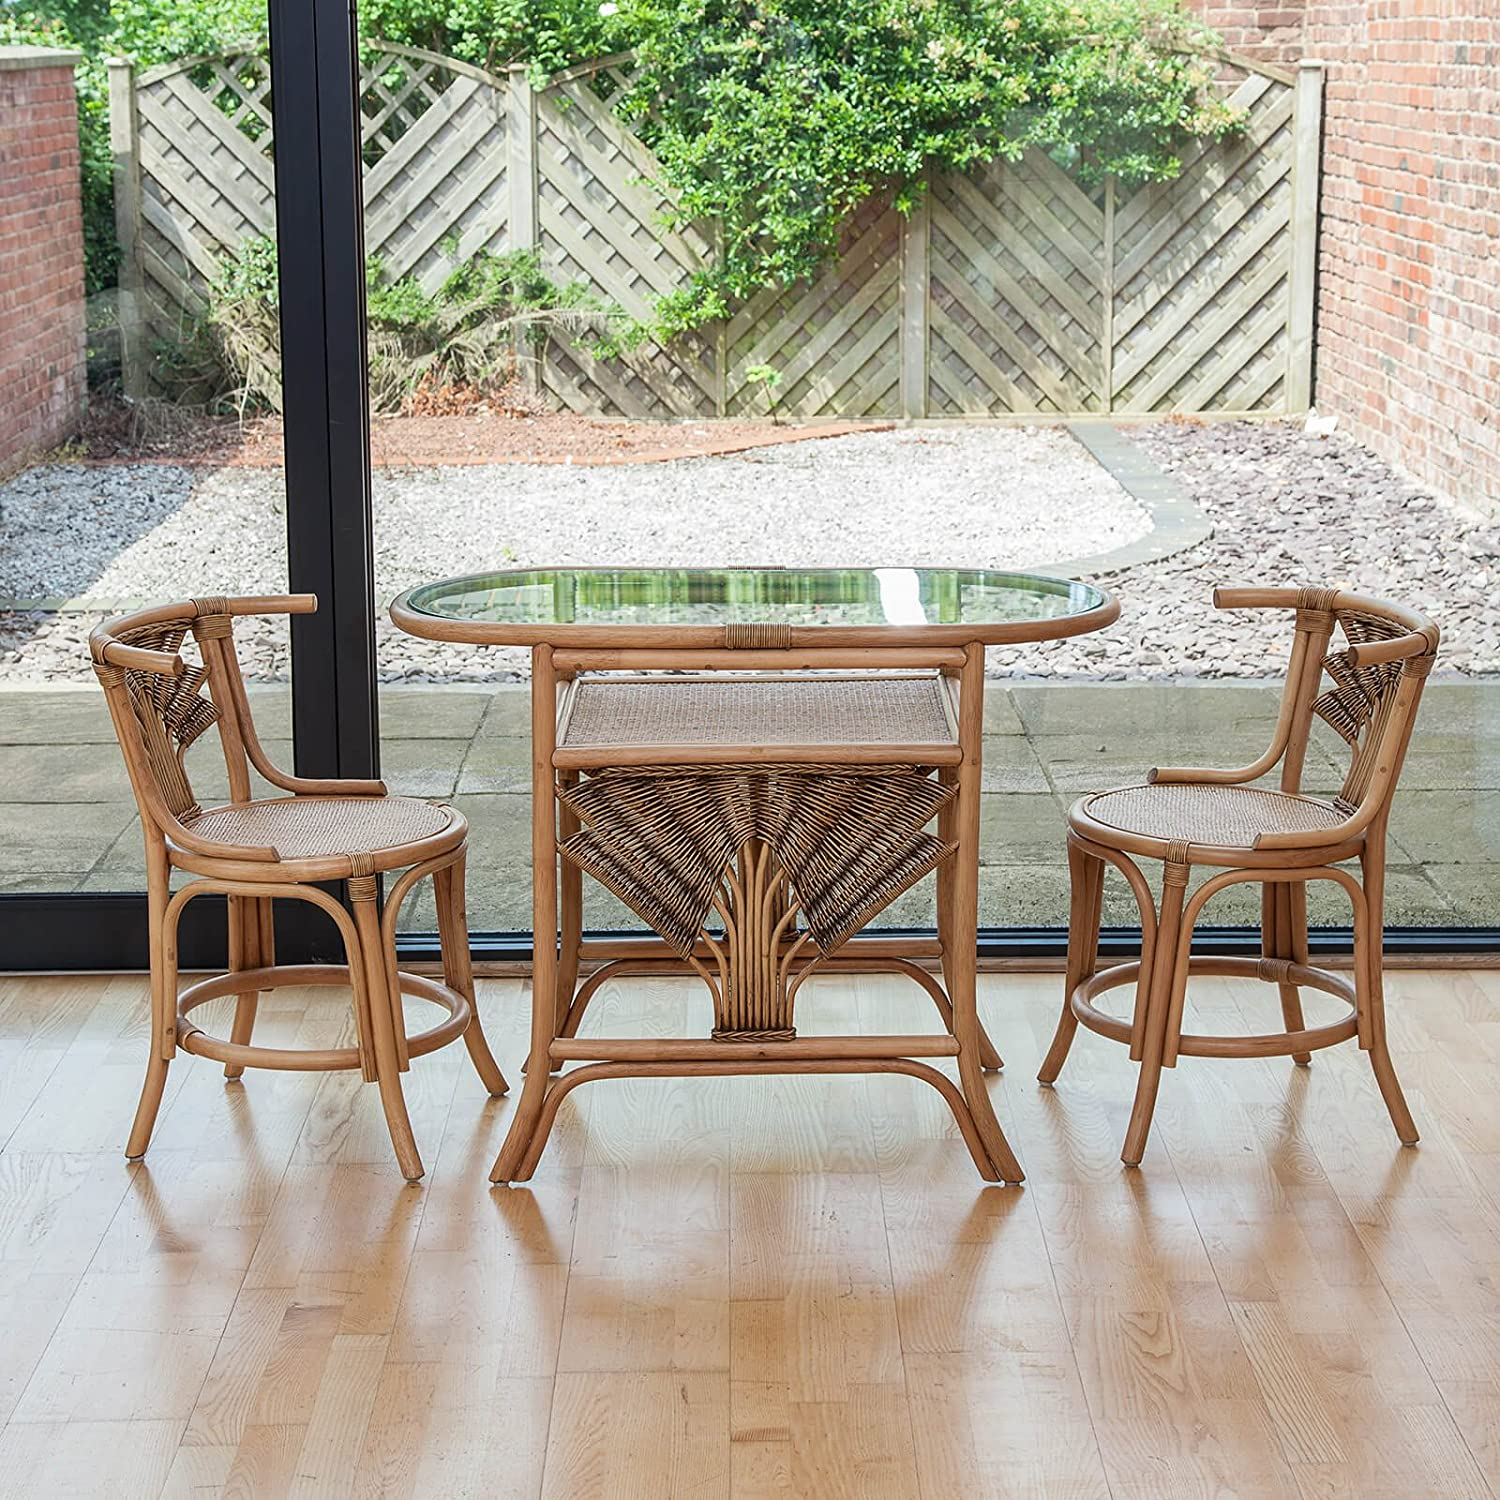 Atlanta Cane Wicker Dining Breakfast Table Chair Set for 2 Alfresia